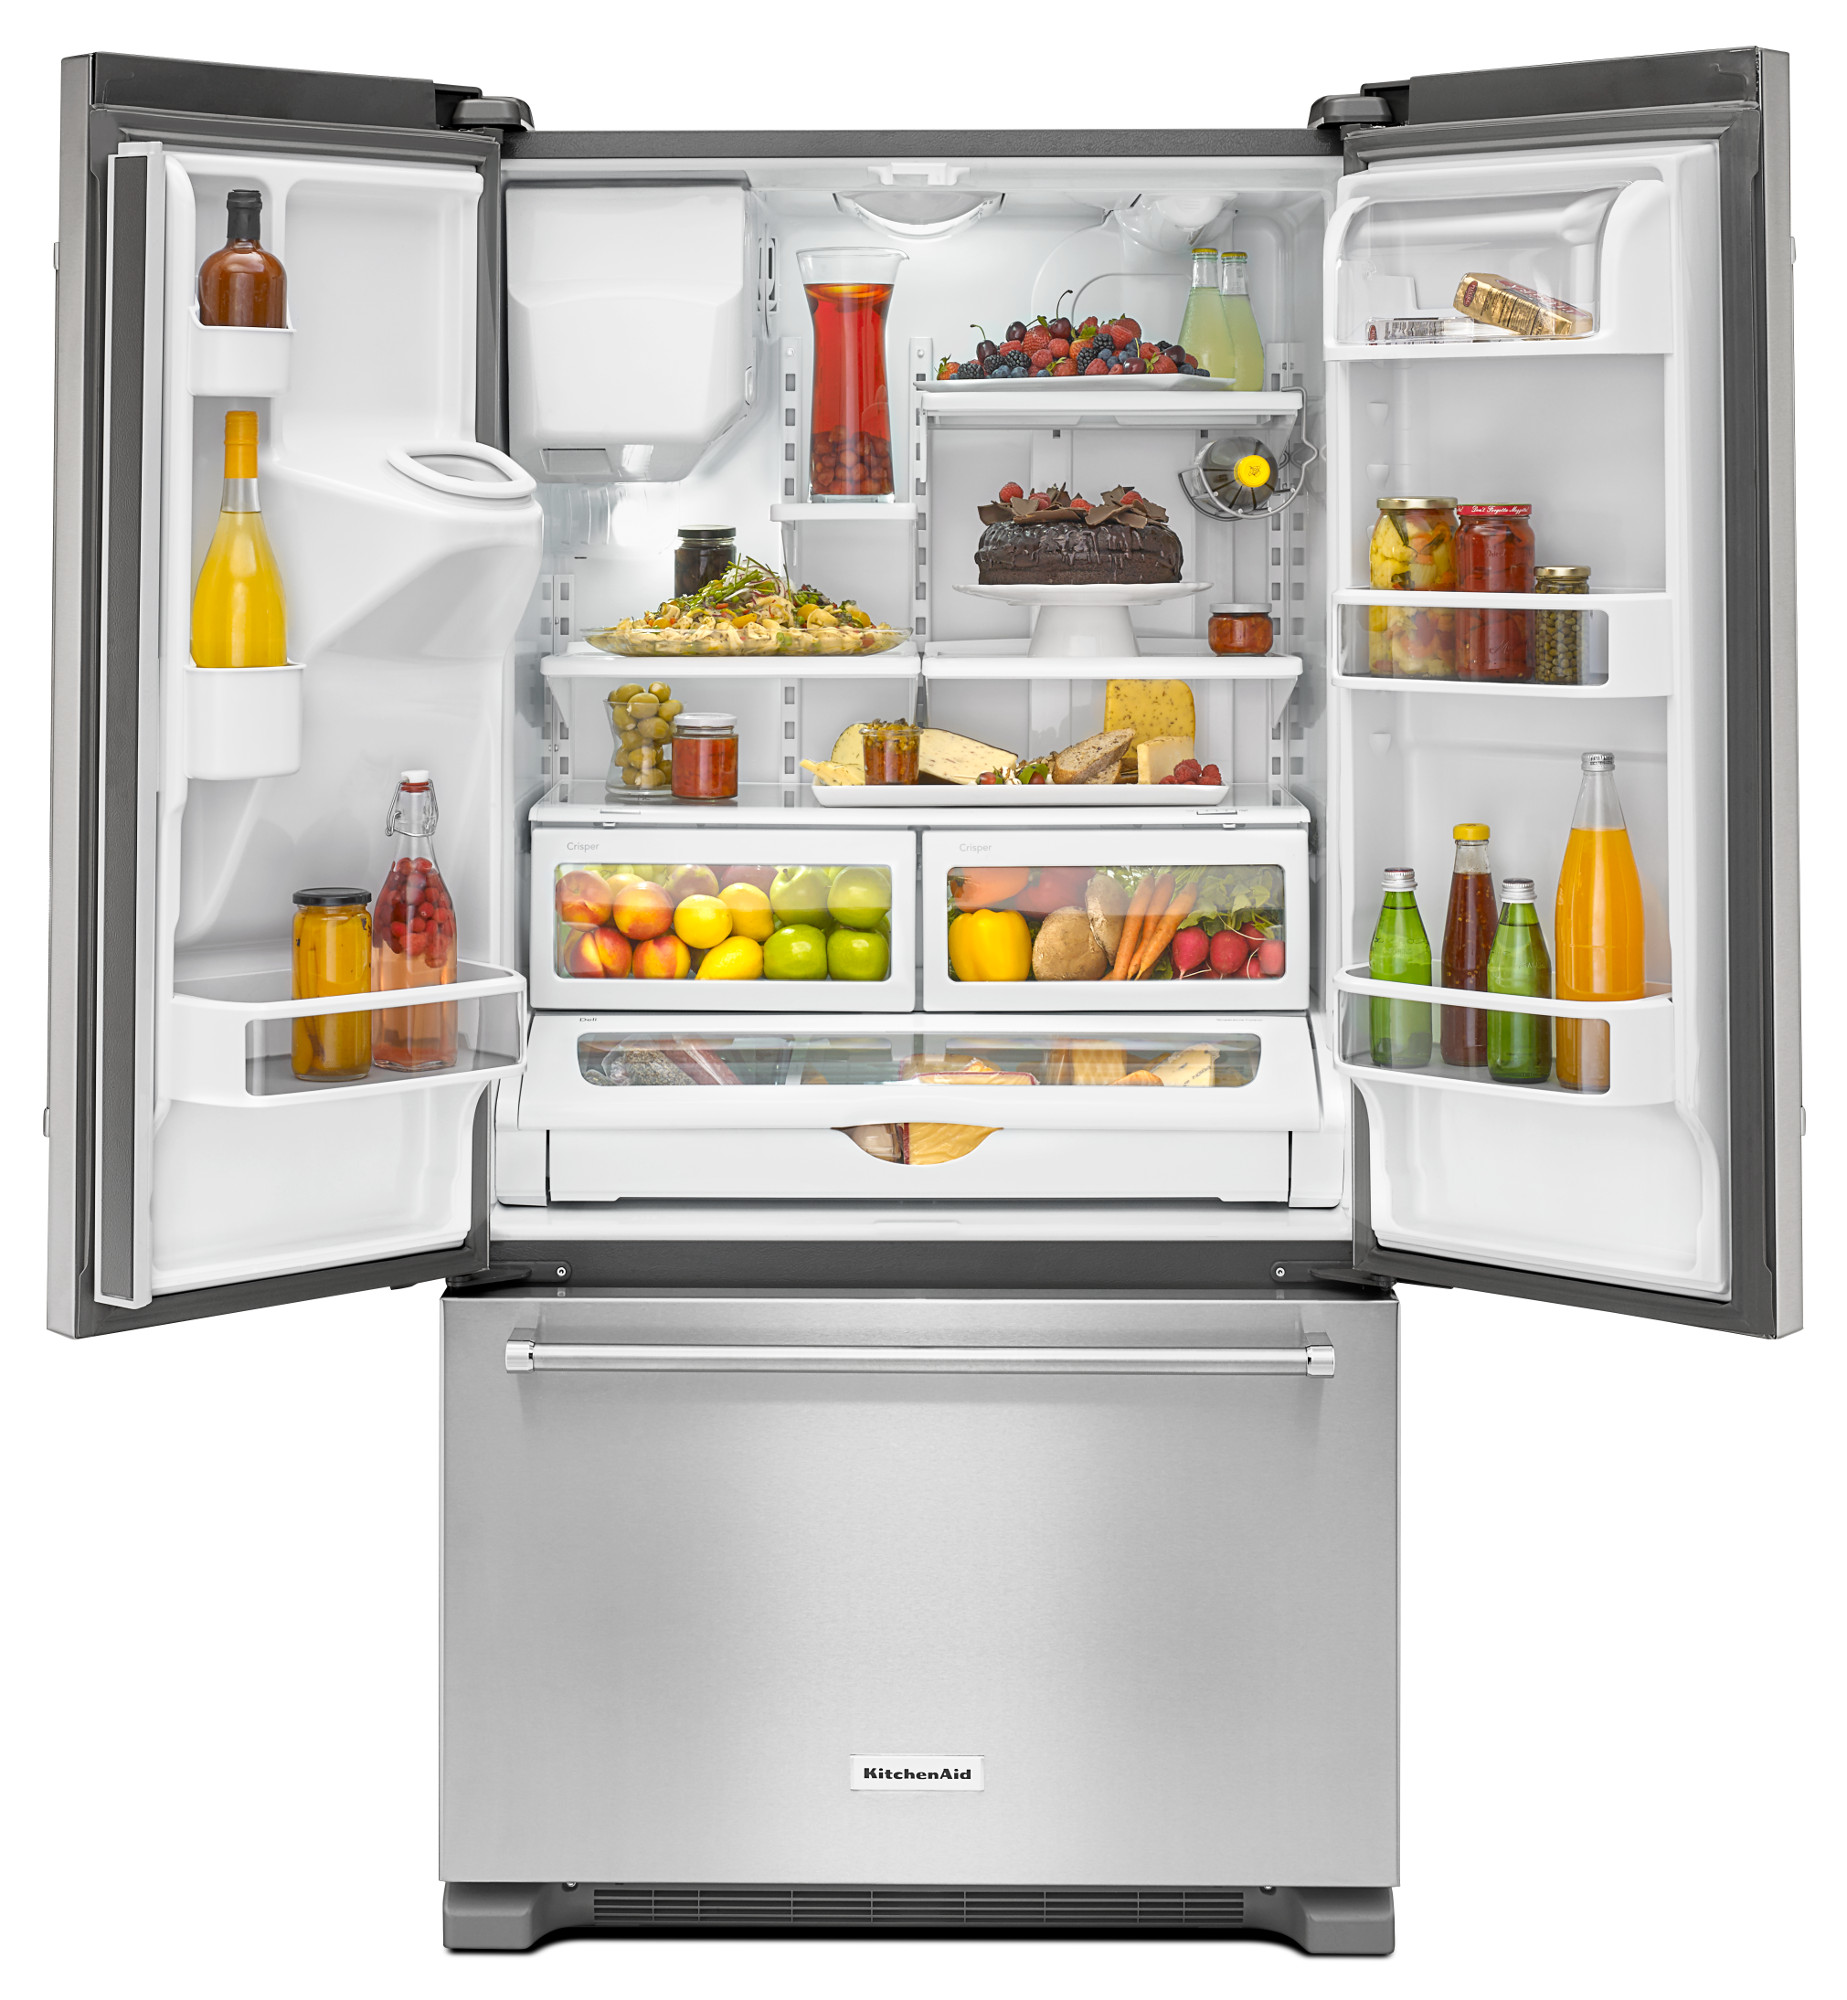 KitchenAid KRFC400ESS 20 cu. ft. Counter-Depth French Door Refrigerator - Stainless Steel